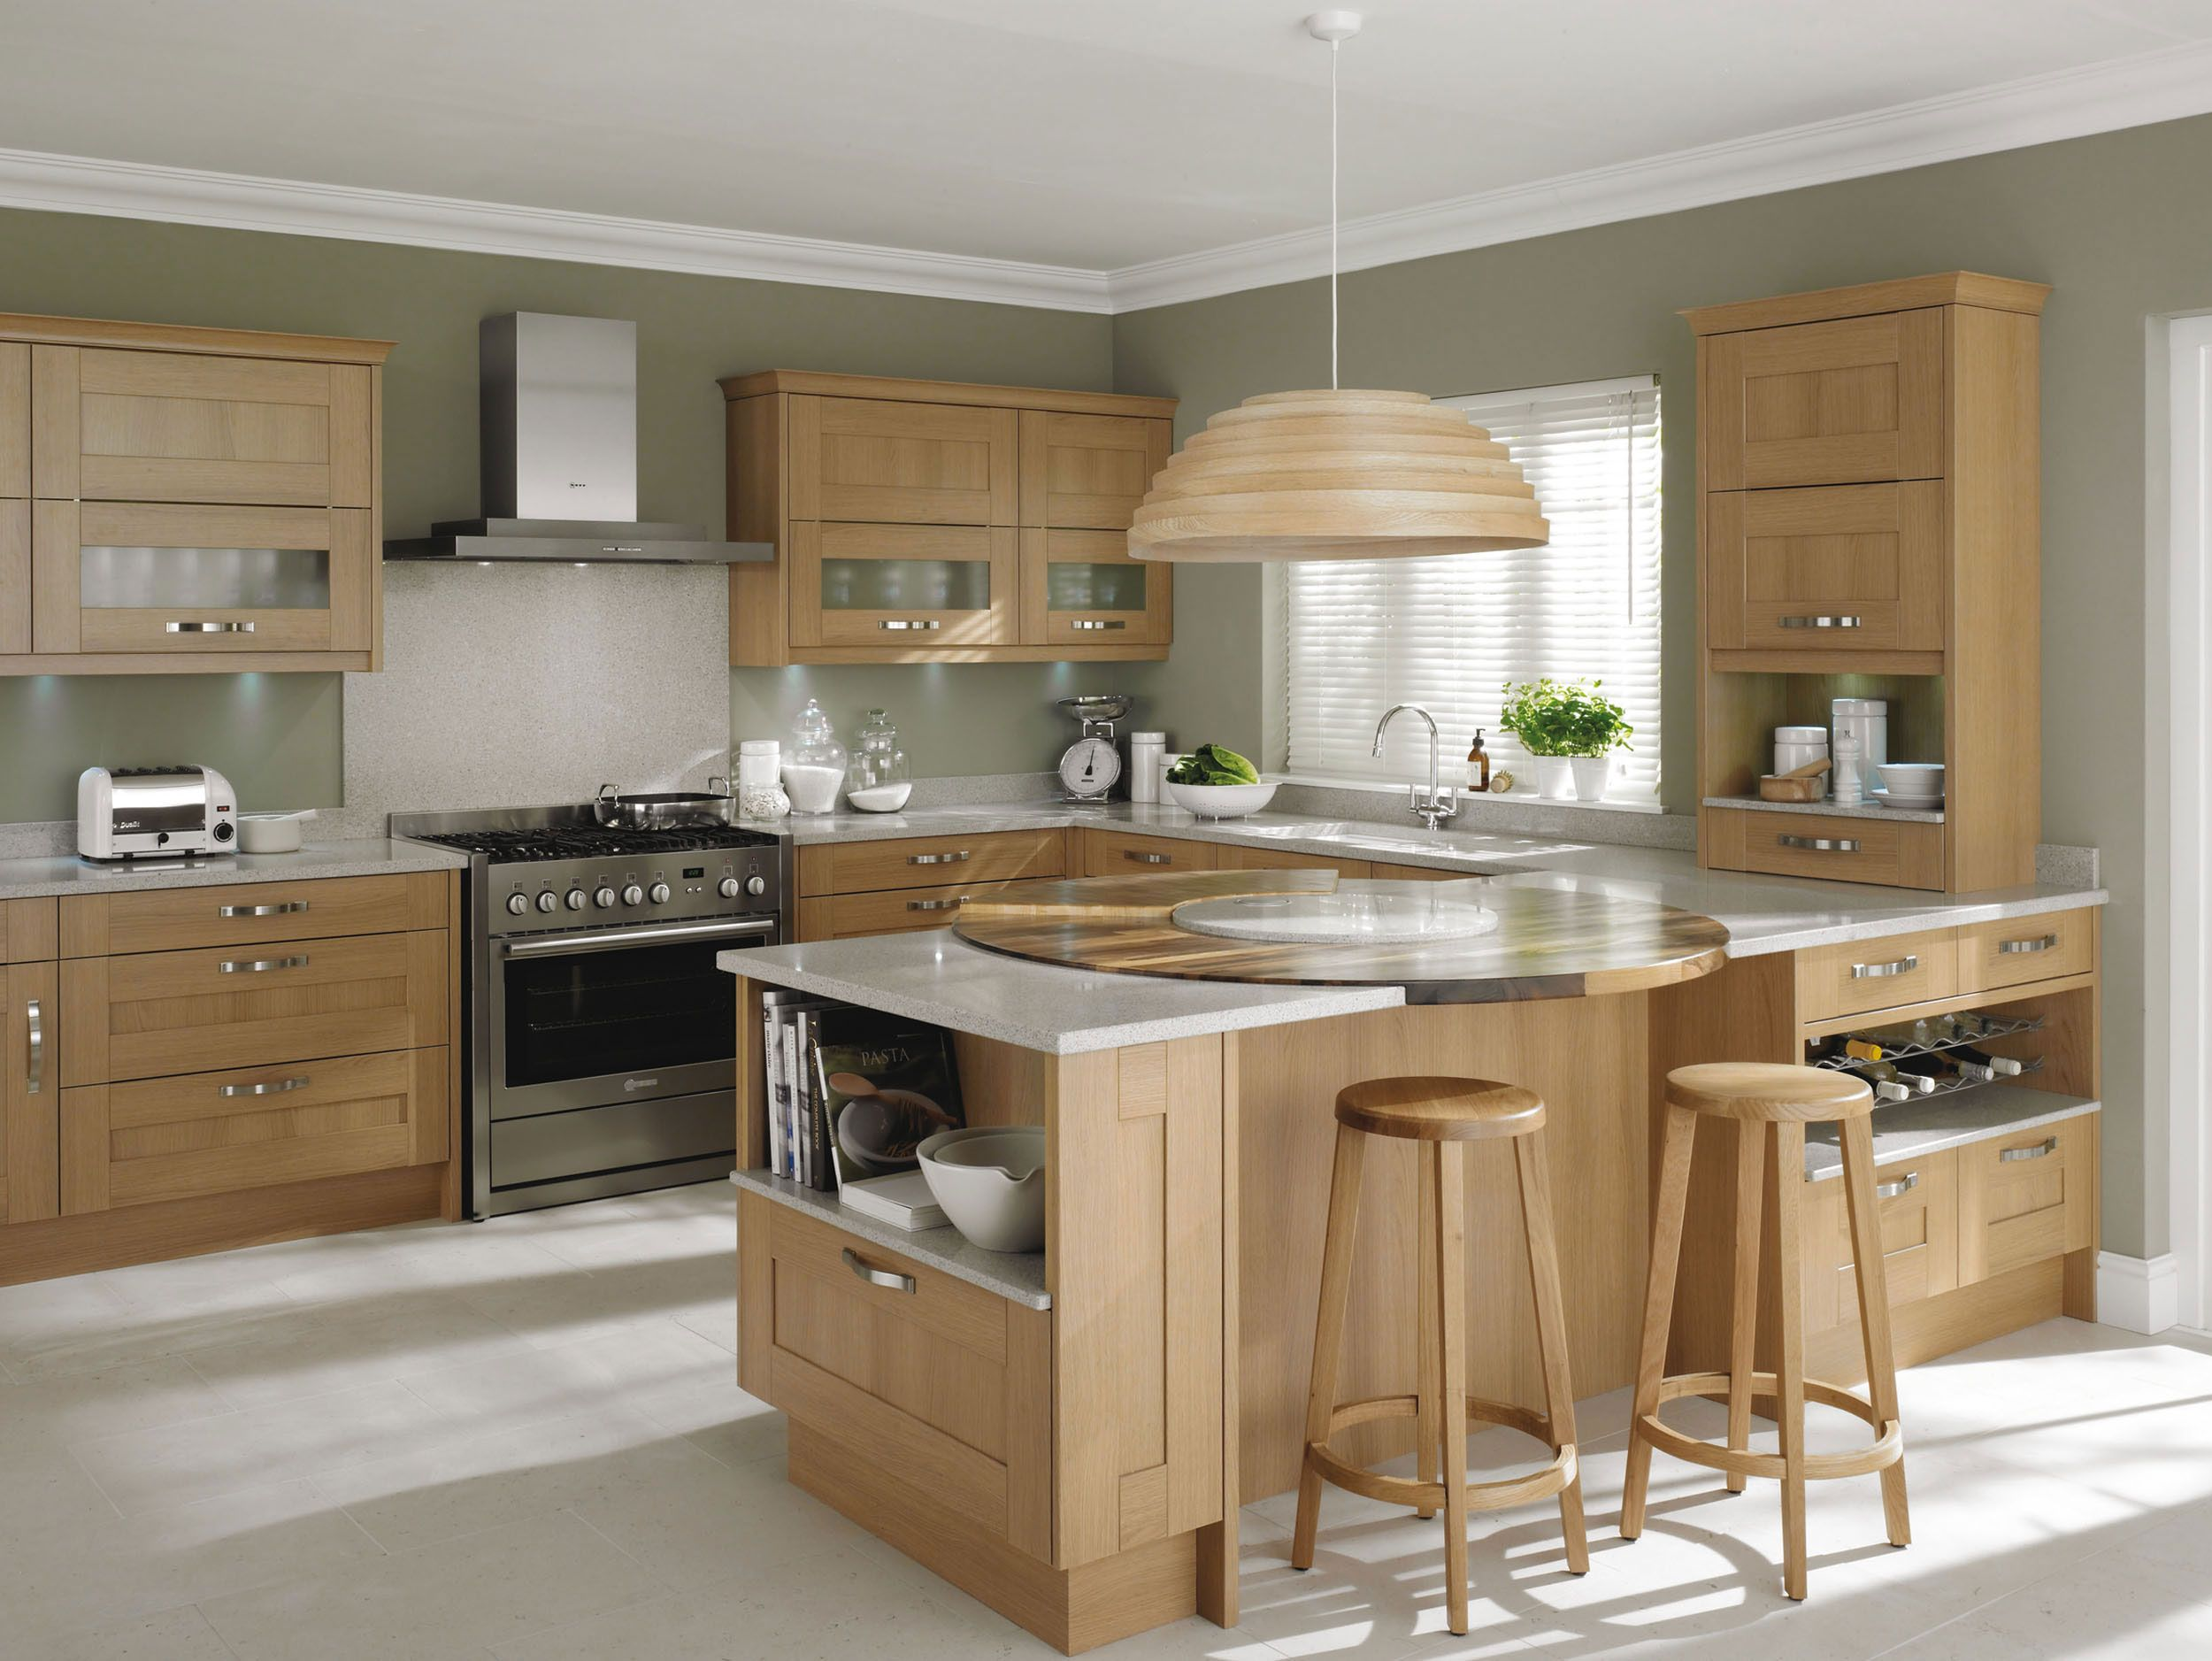 Oak kitchen ideas google search home kitchens for Kitchen ideas with oak cabinets